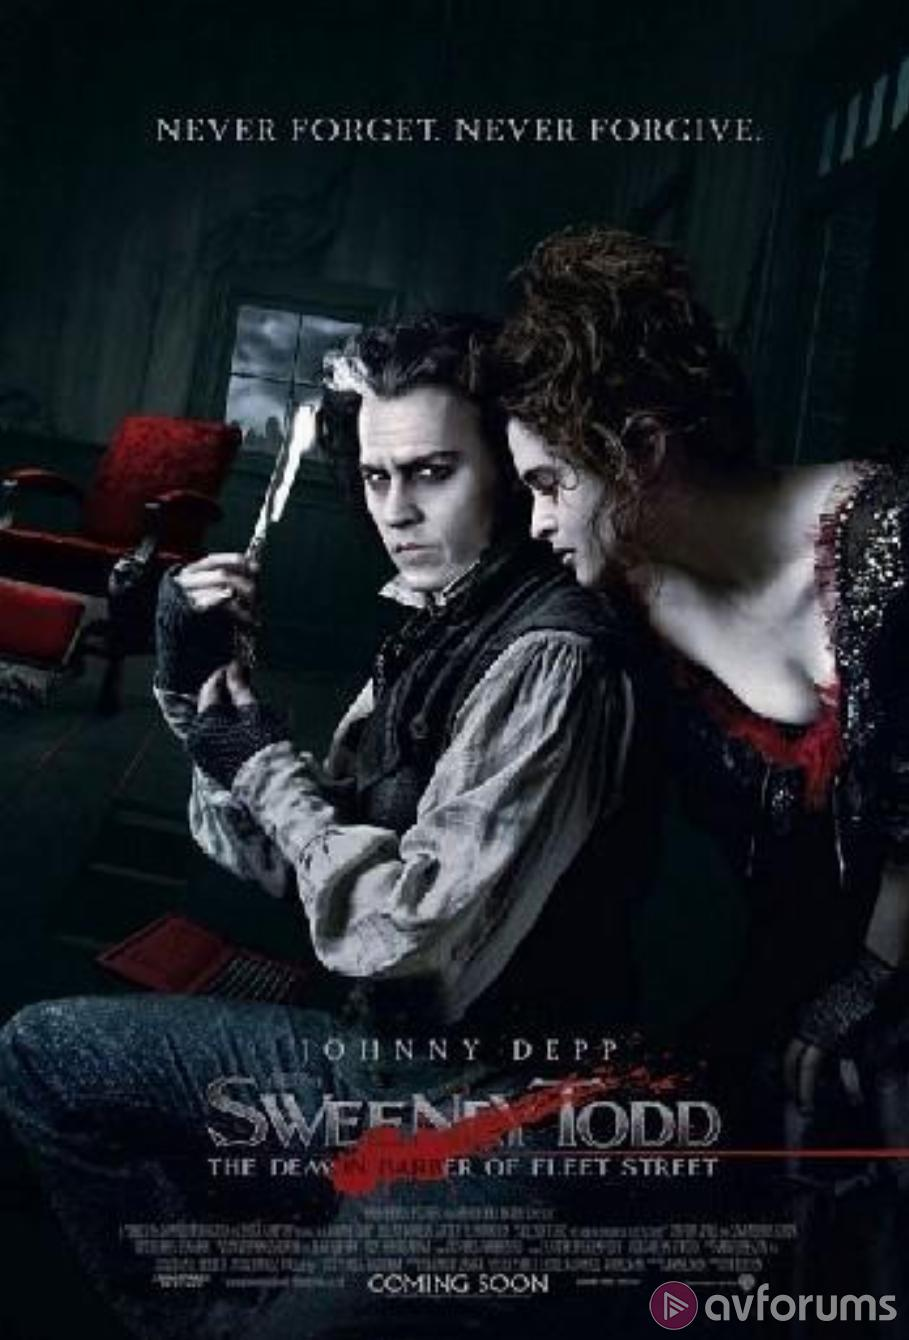 Sweeney Todd: The Demon Barber of Fleet Street Review